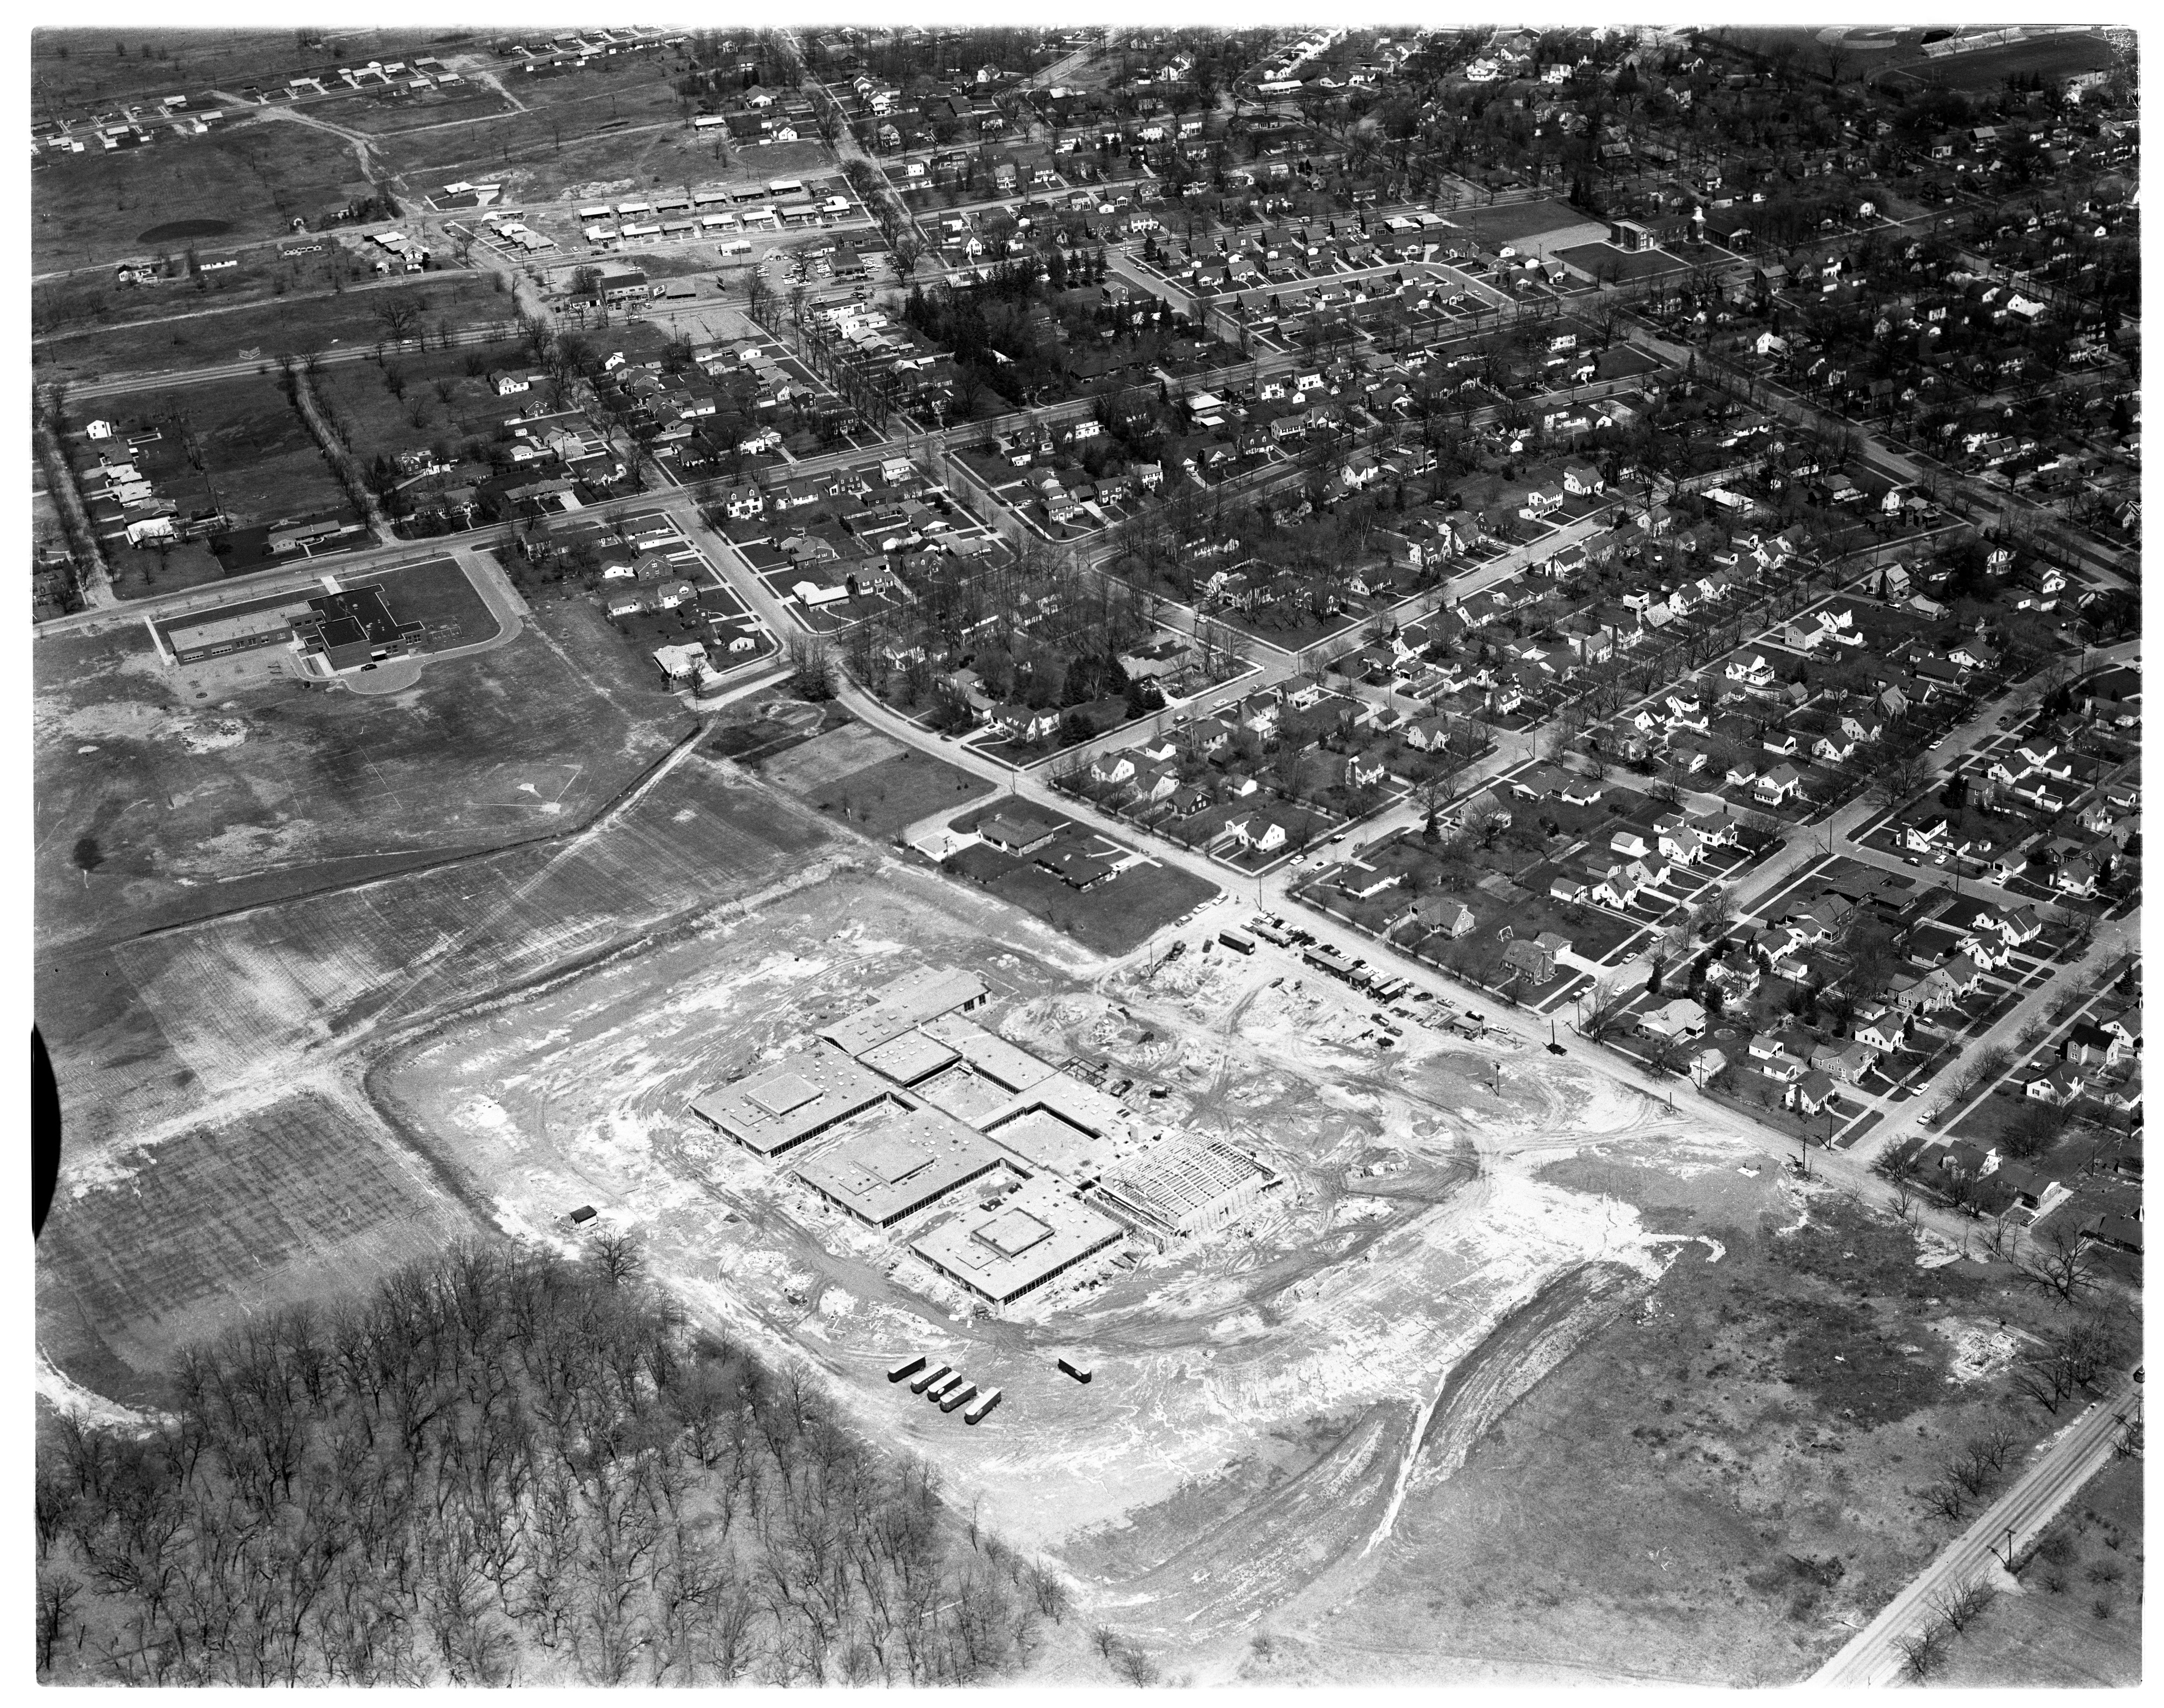 Aerial Photograph of Ypsilanti's West Junior High School, April 1959 image